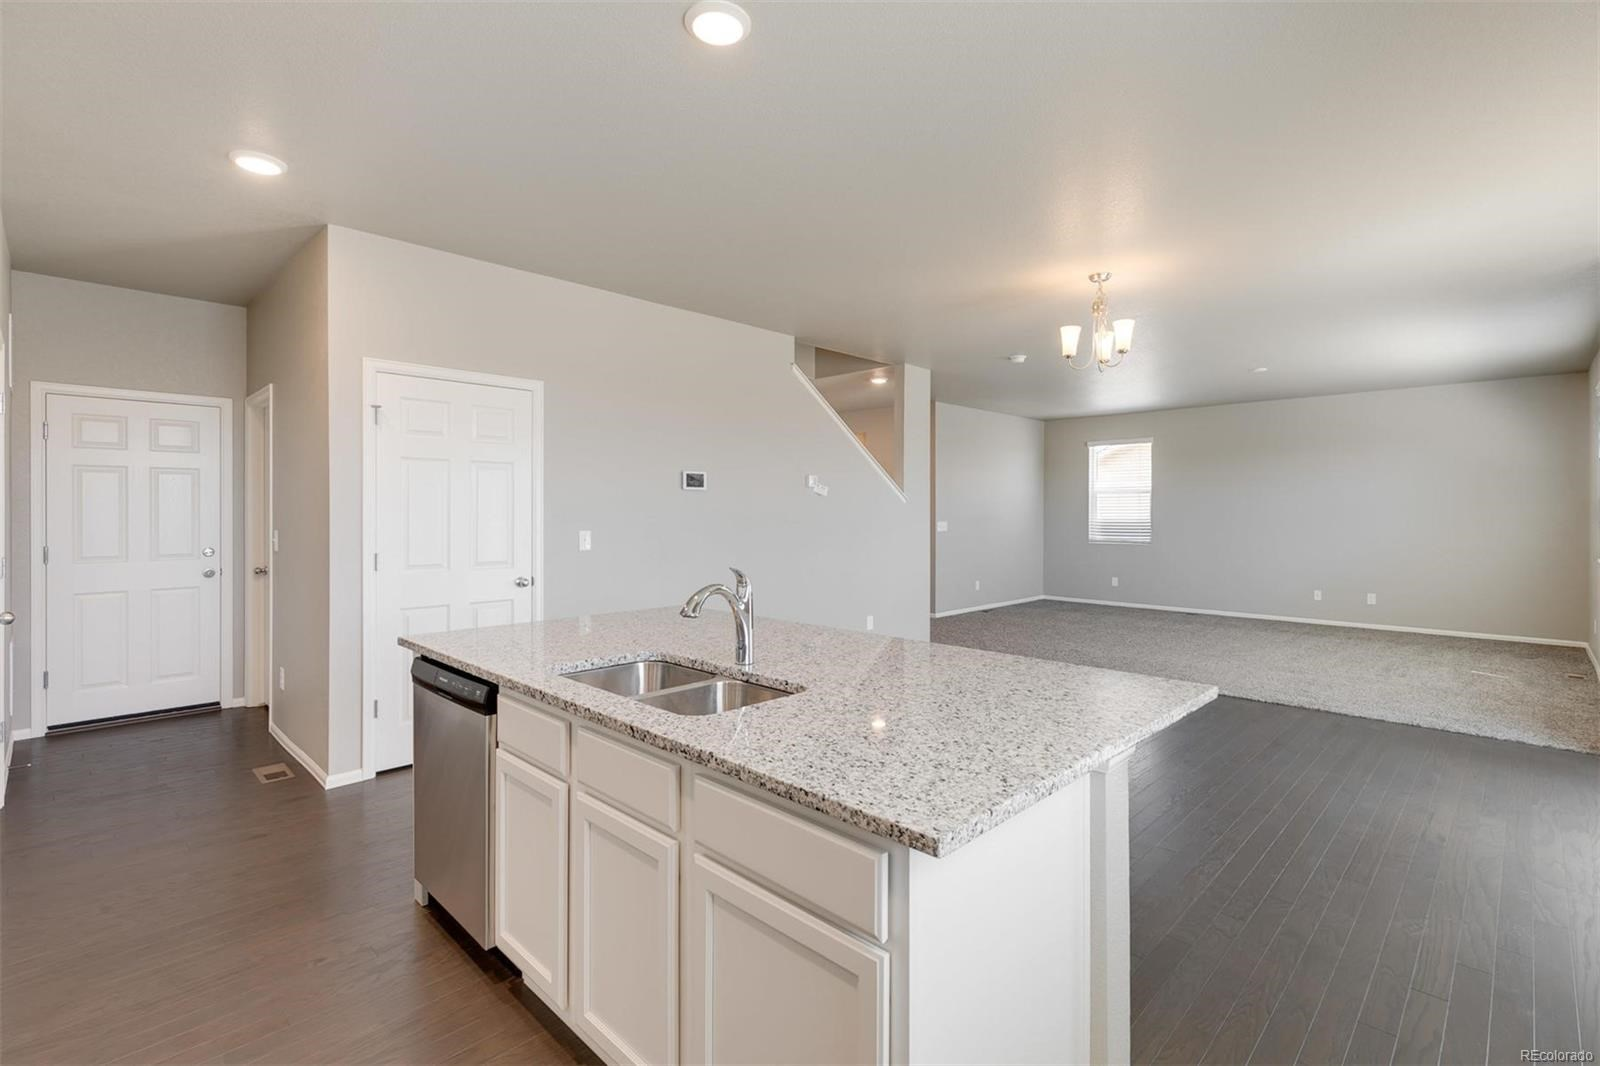 MLS# 3645271 - 12 - 6915 Grainery Court, Timnath, CO 80547